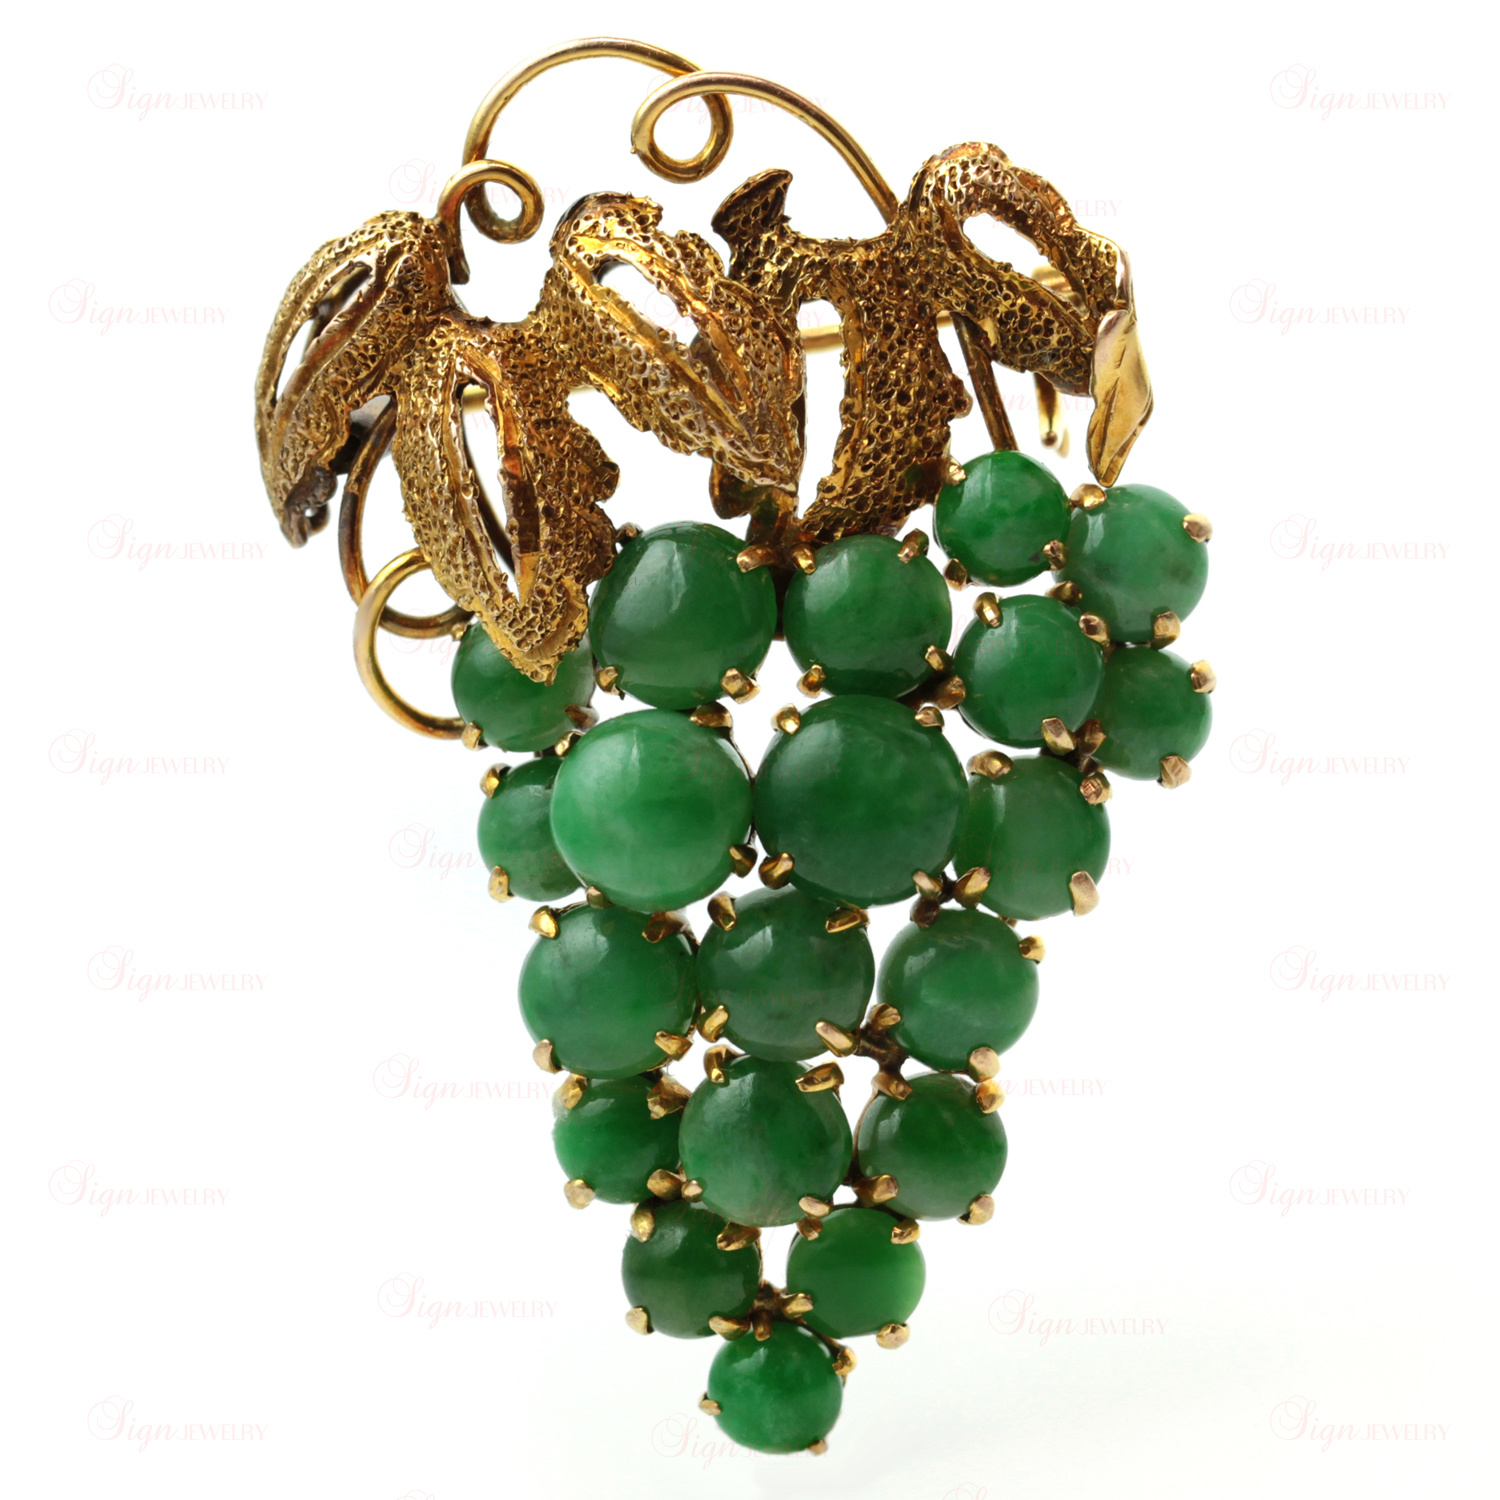 Vintage 14k Yellow Gold Green Jade Bunch of Grapes Brooch